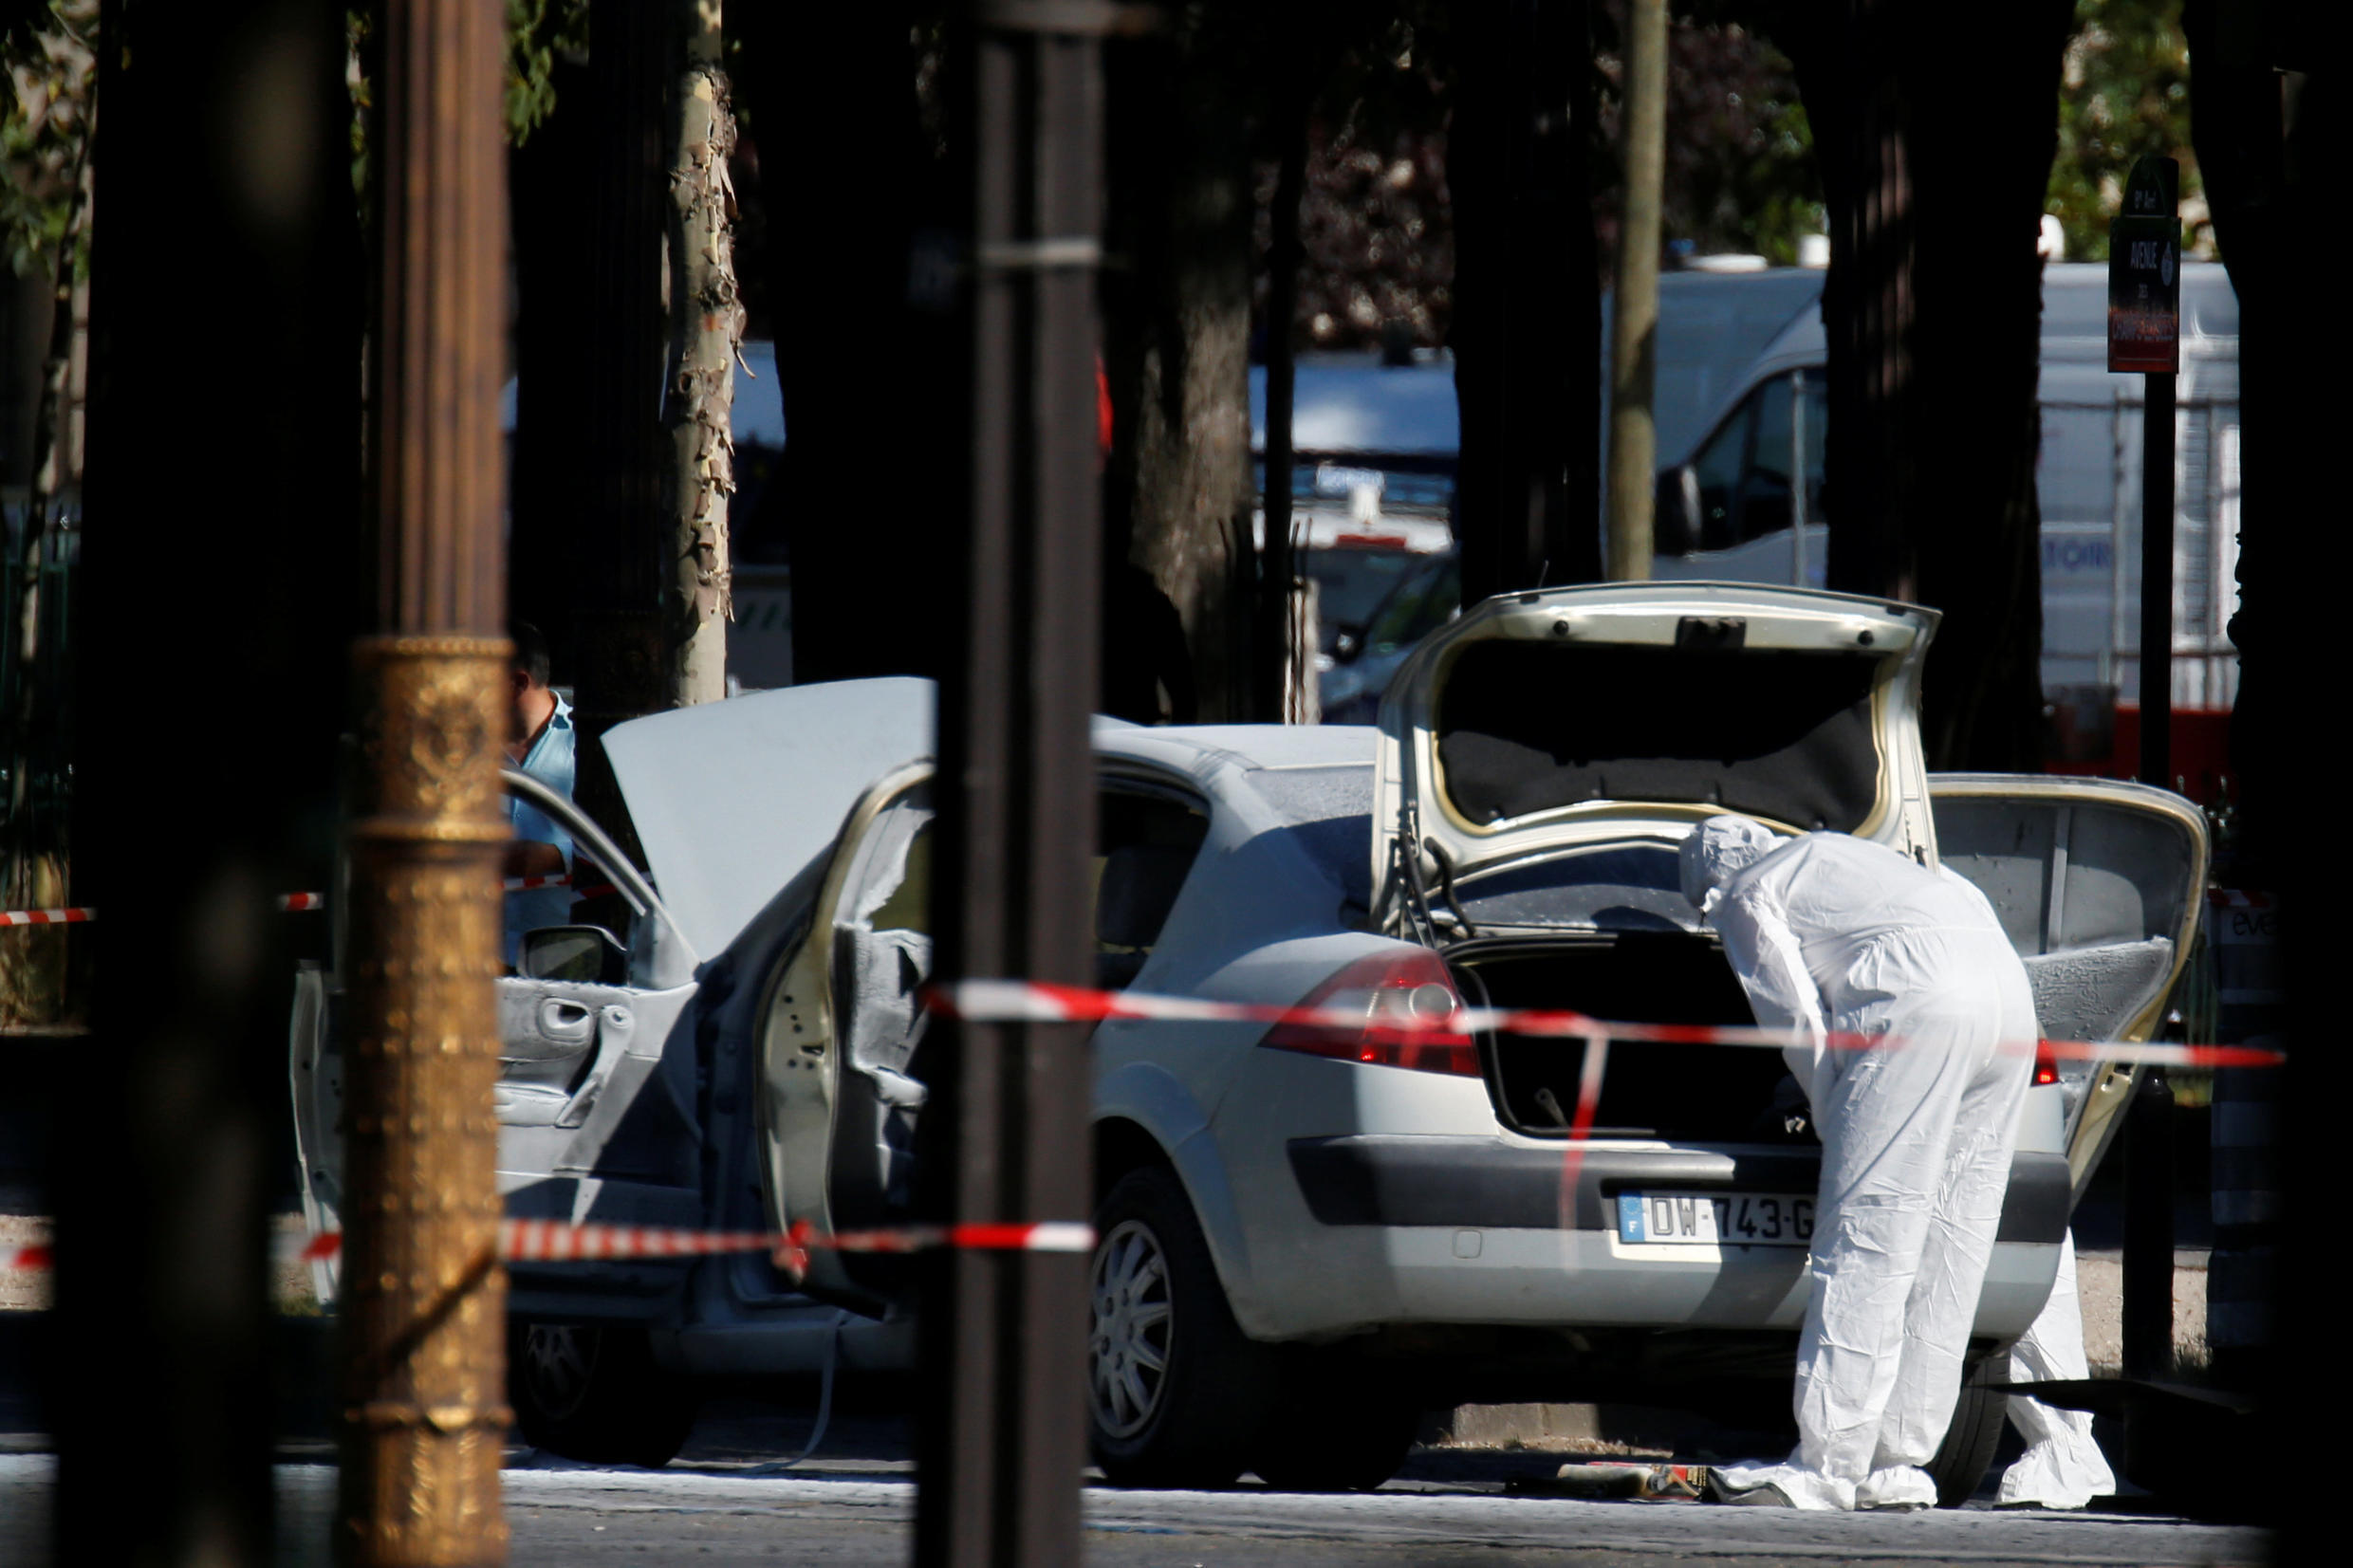 Forensic experts at the scene of the Champs-Elysées attack